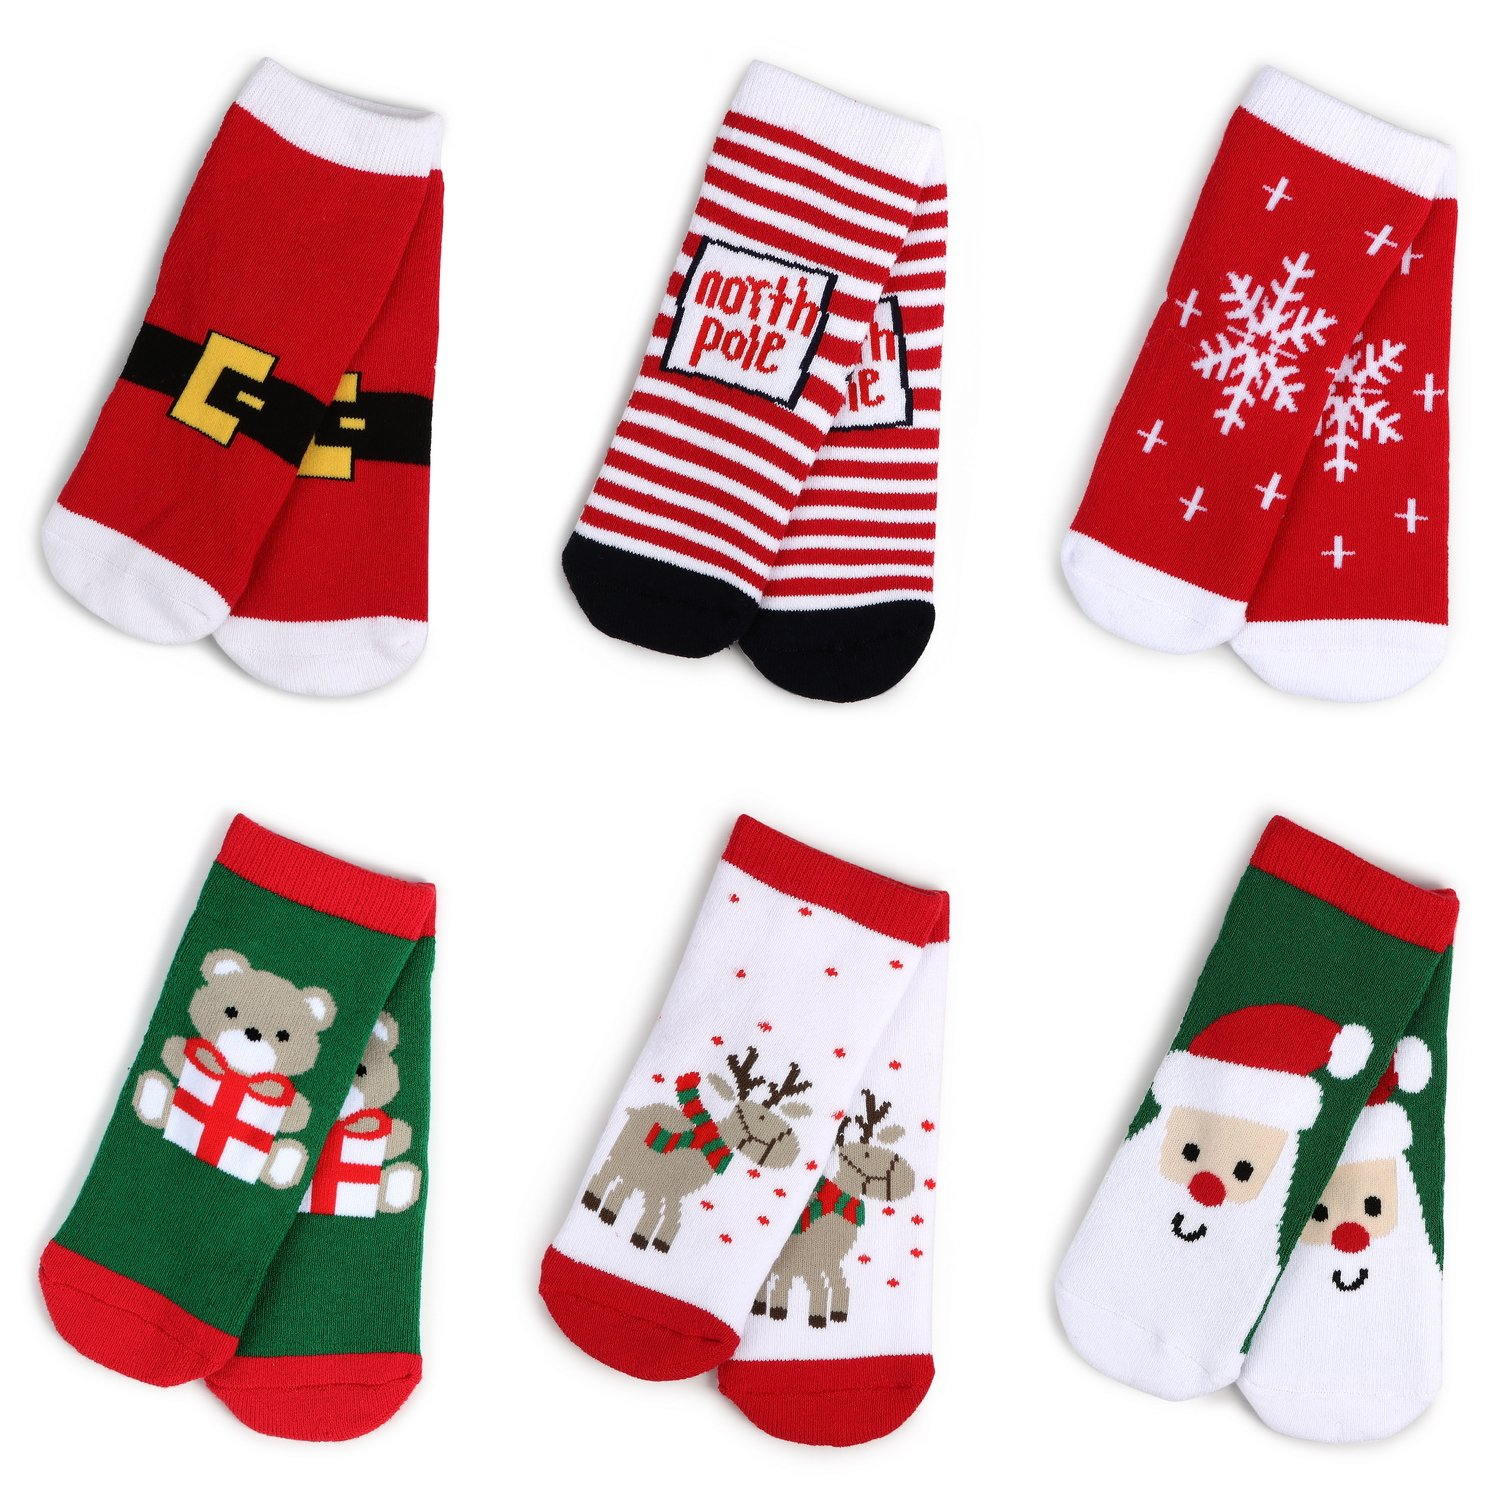 Haley Clothes Kids Christmas Socks Gift Holiday Cartoon Boys Girls Toddlers Baby Animal Pattern Cute Cotton Crew Socks (5 Pairs/6 Pairs), Green, Red, White, 6 Pairs, Size M, fits for 3y-5y